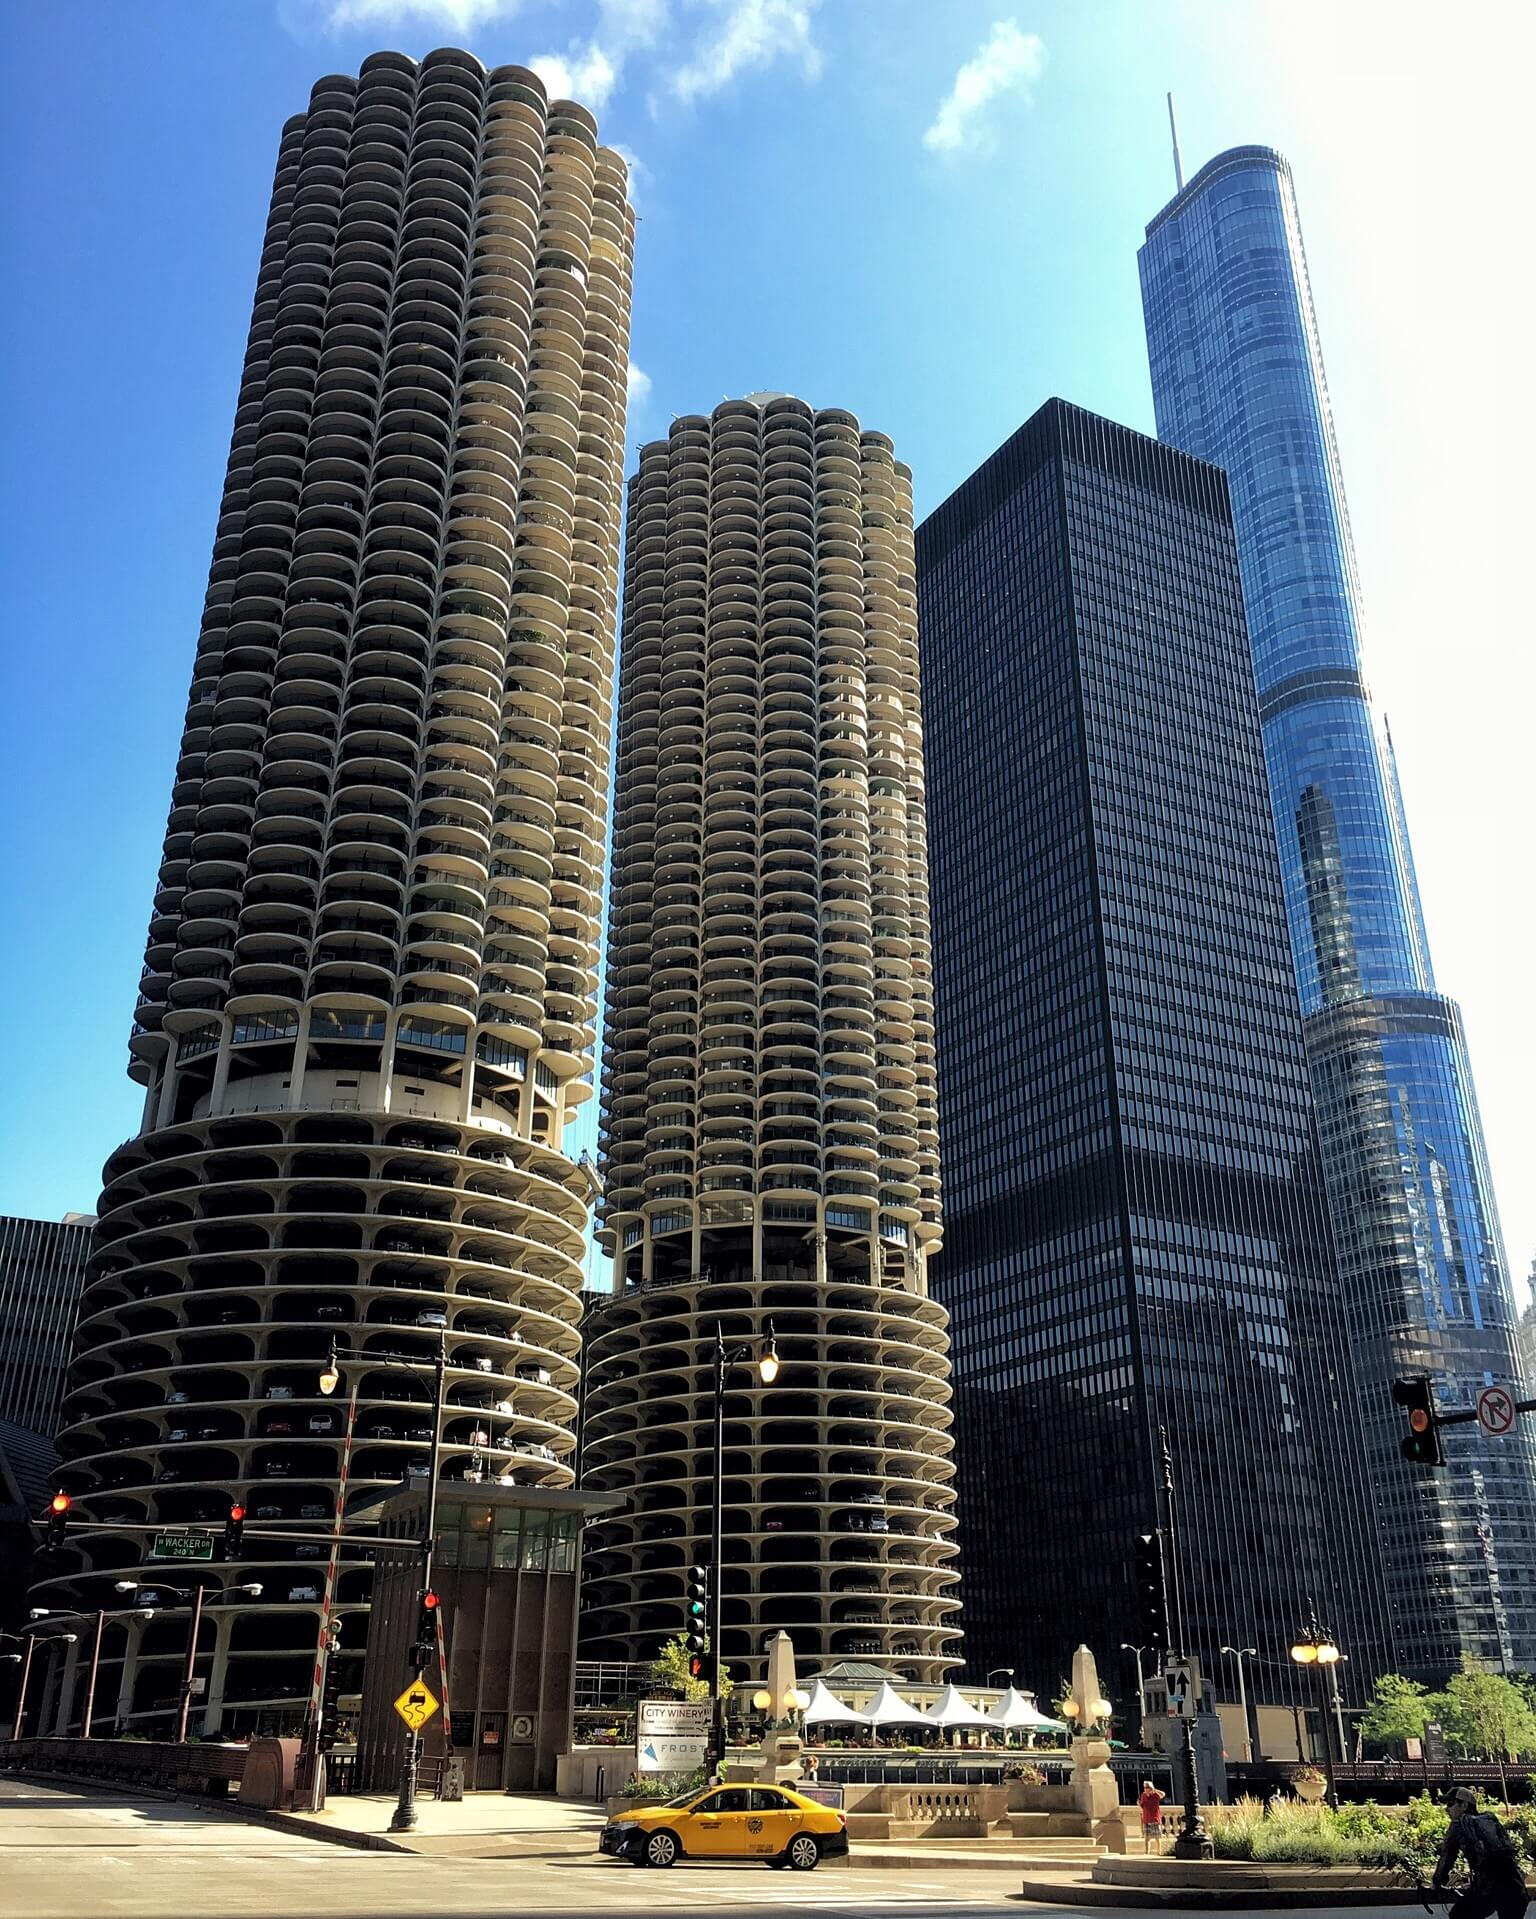 marina towers - from dearborn and wacker - taken with iphone on bike